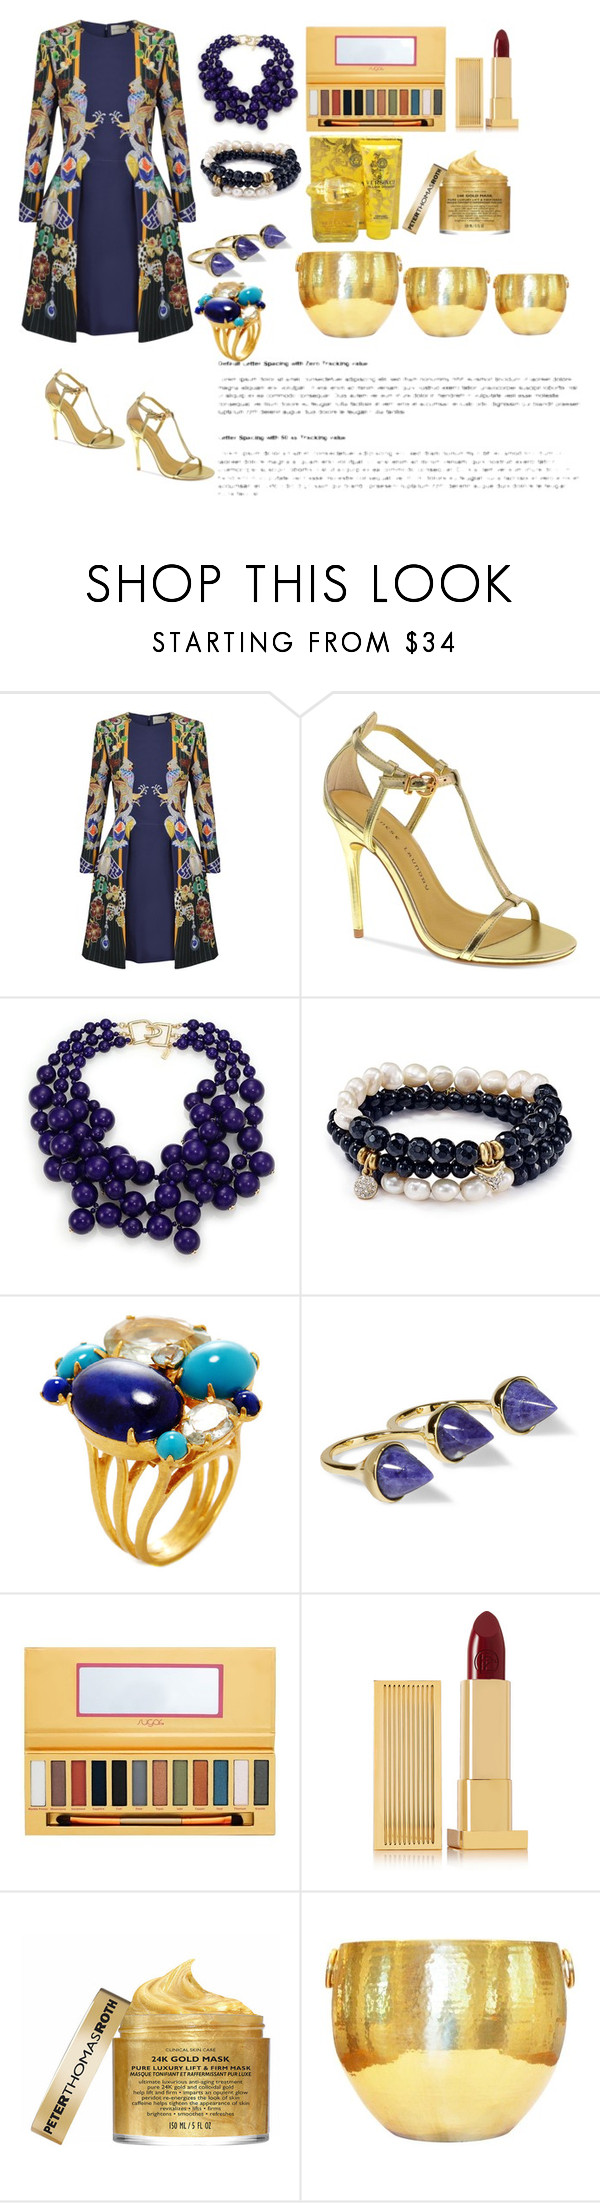 """Untitled #511"" by thestyle-chic ❤ liked on Polyvore featuring Mary Katrantzou, Chinese Laundry, Kenneth Jay Lane, Sequin, Bounkit, Noir Jewelry, Sugar, Lipstick Queen, Peter Thomas Roth and Versace"